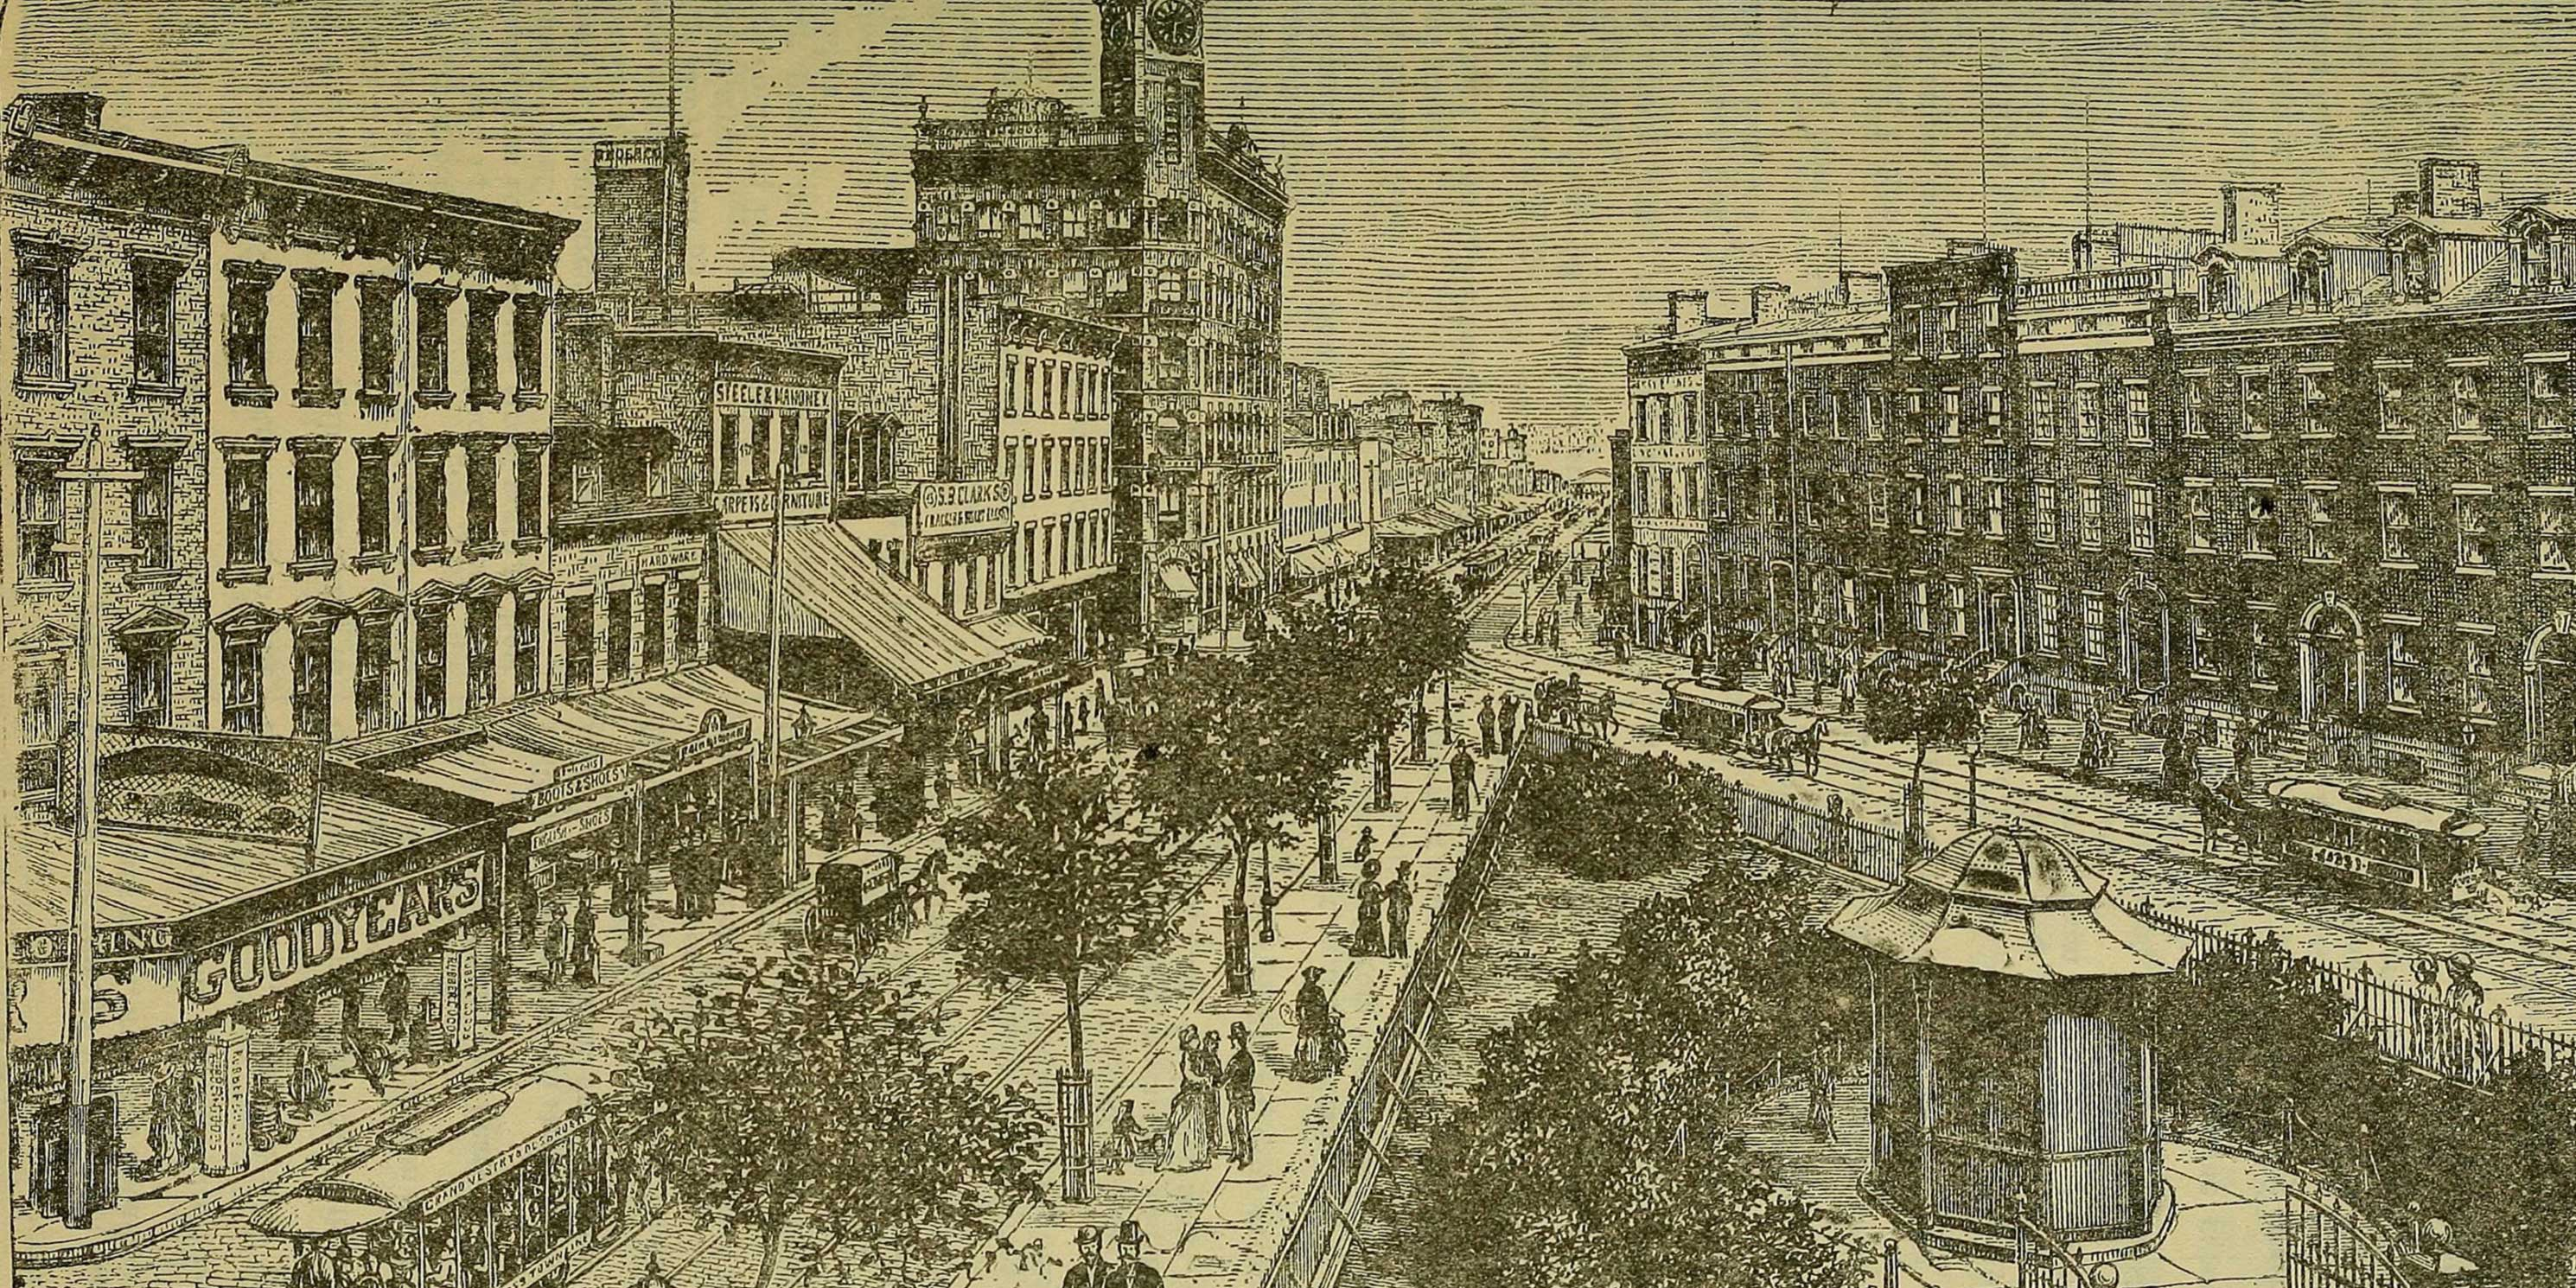 drawing of Greenwich Village streets in 1884